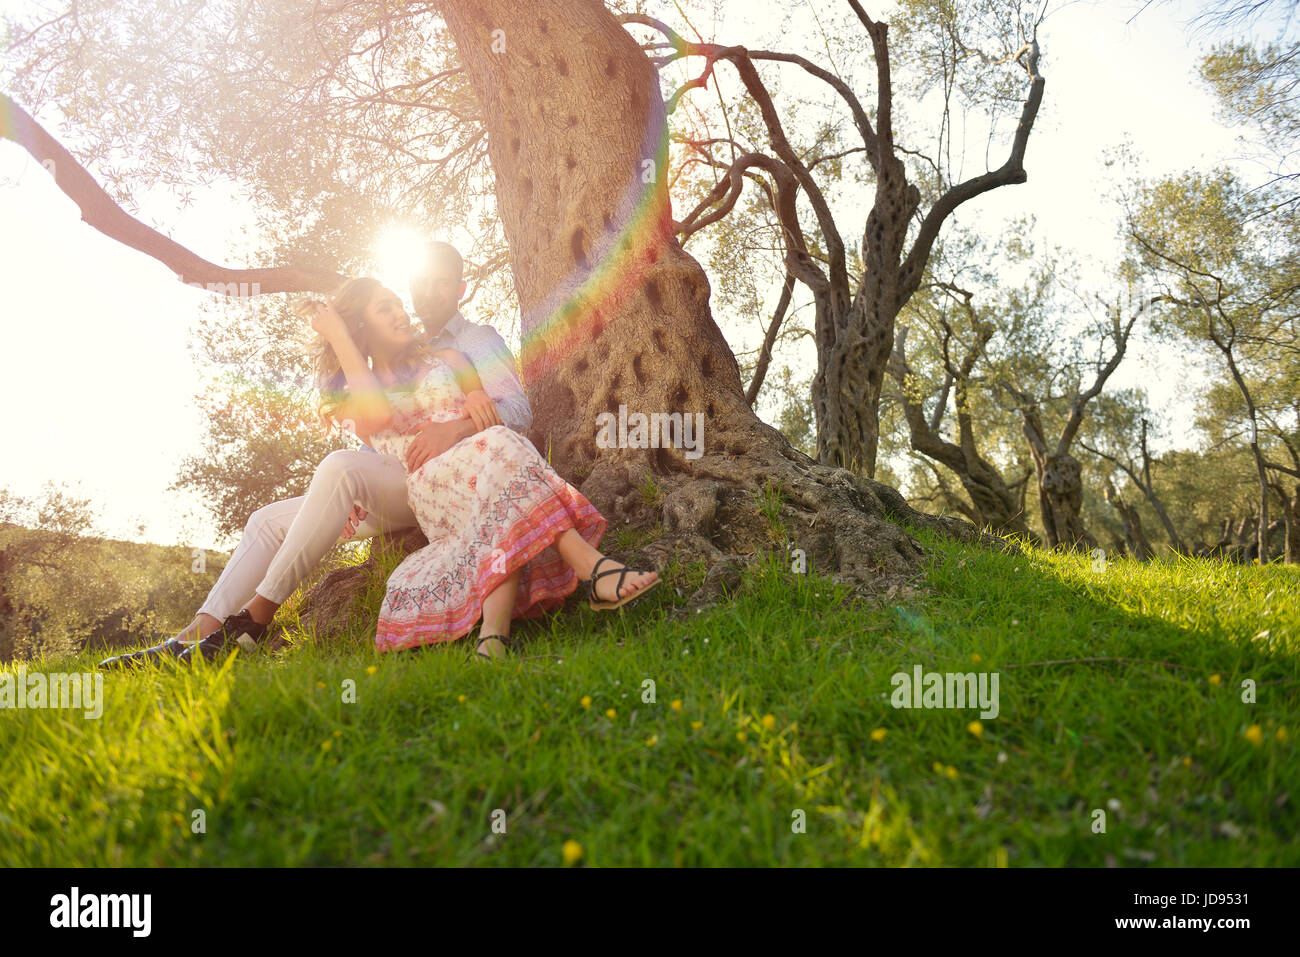 Stock Photo. Couple Relax Under The Tree. Fine Art Style. Olive Garden.